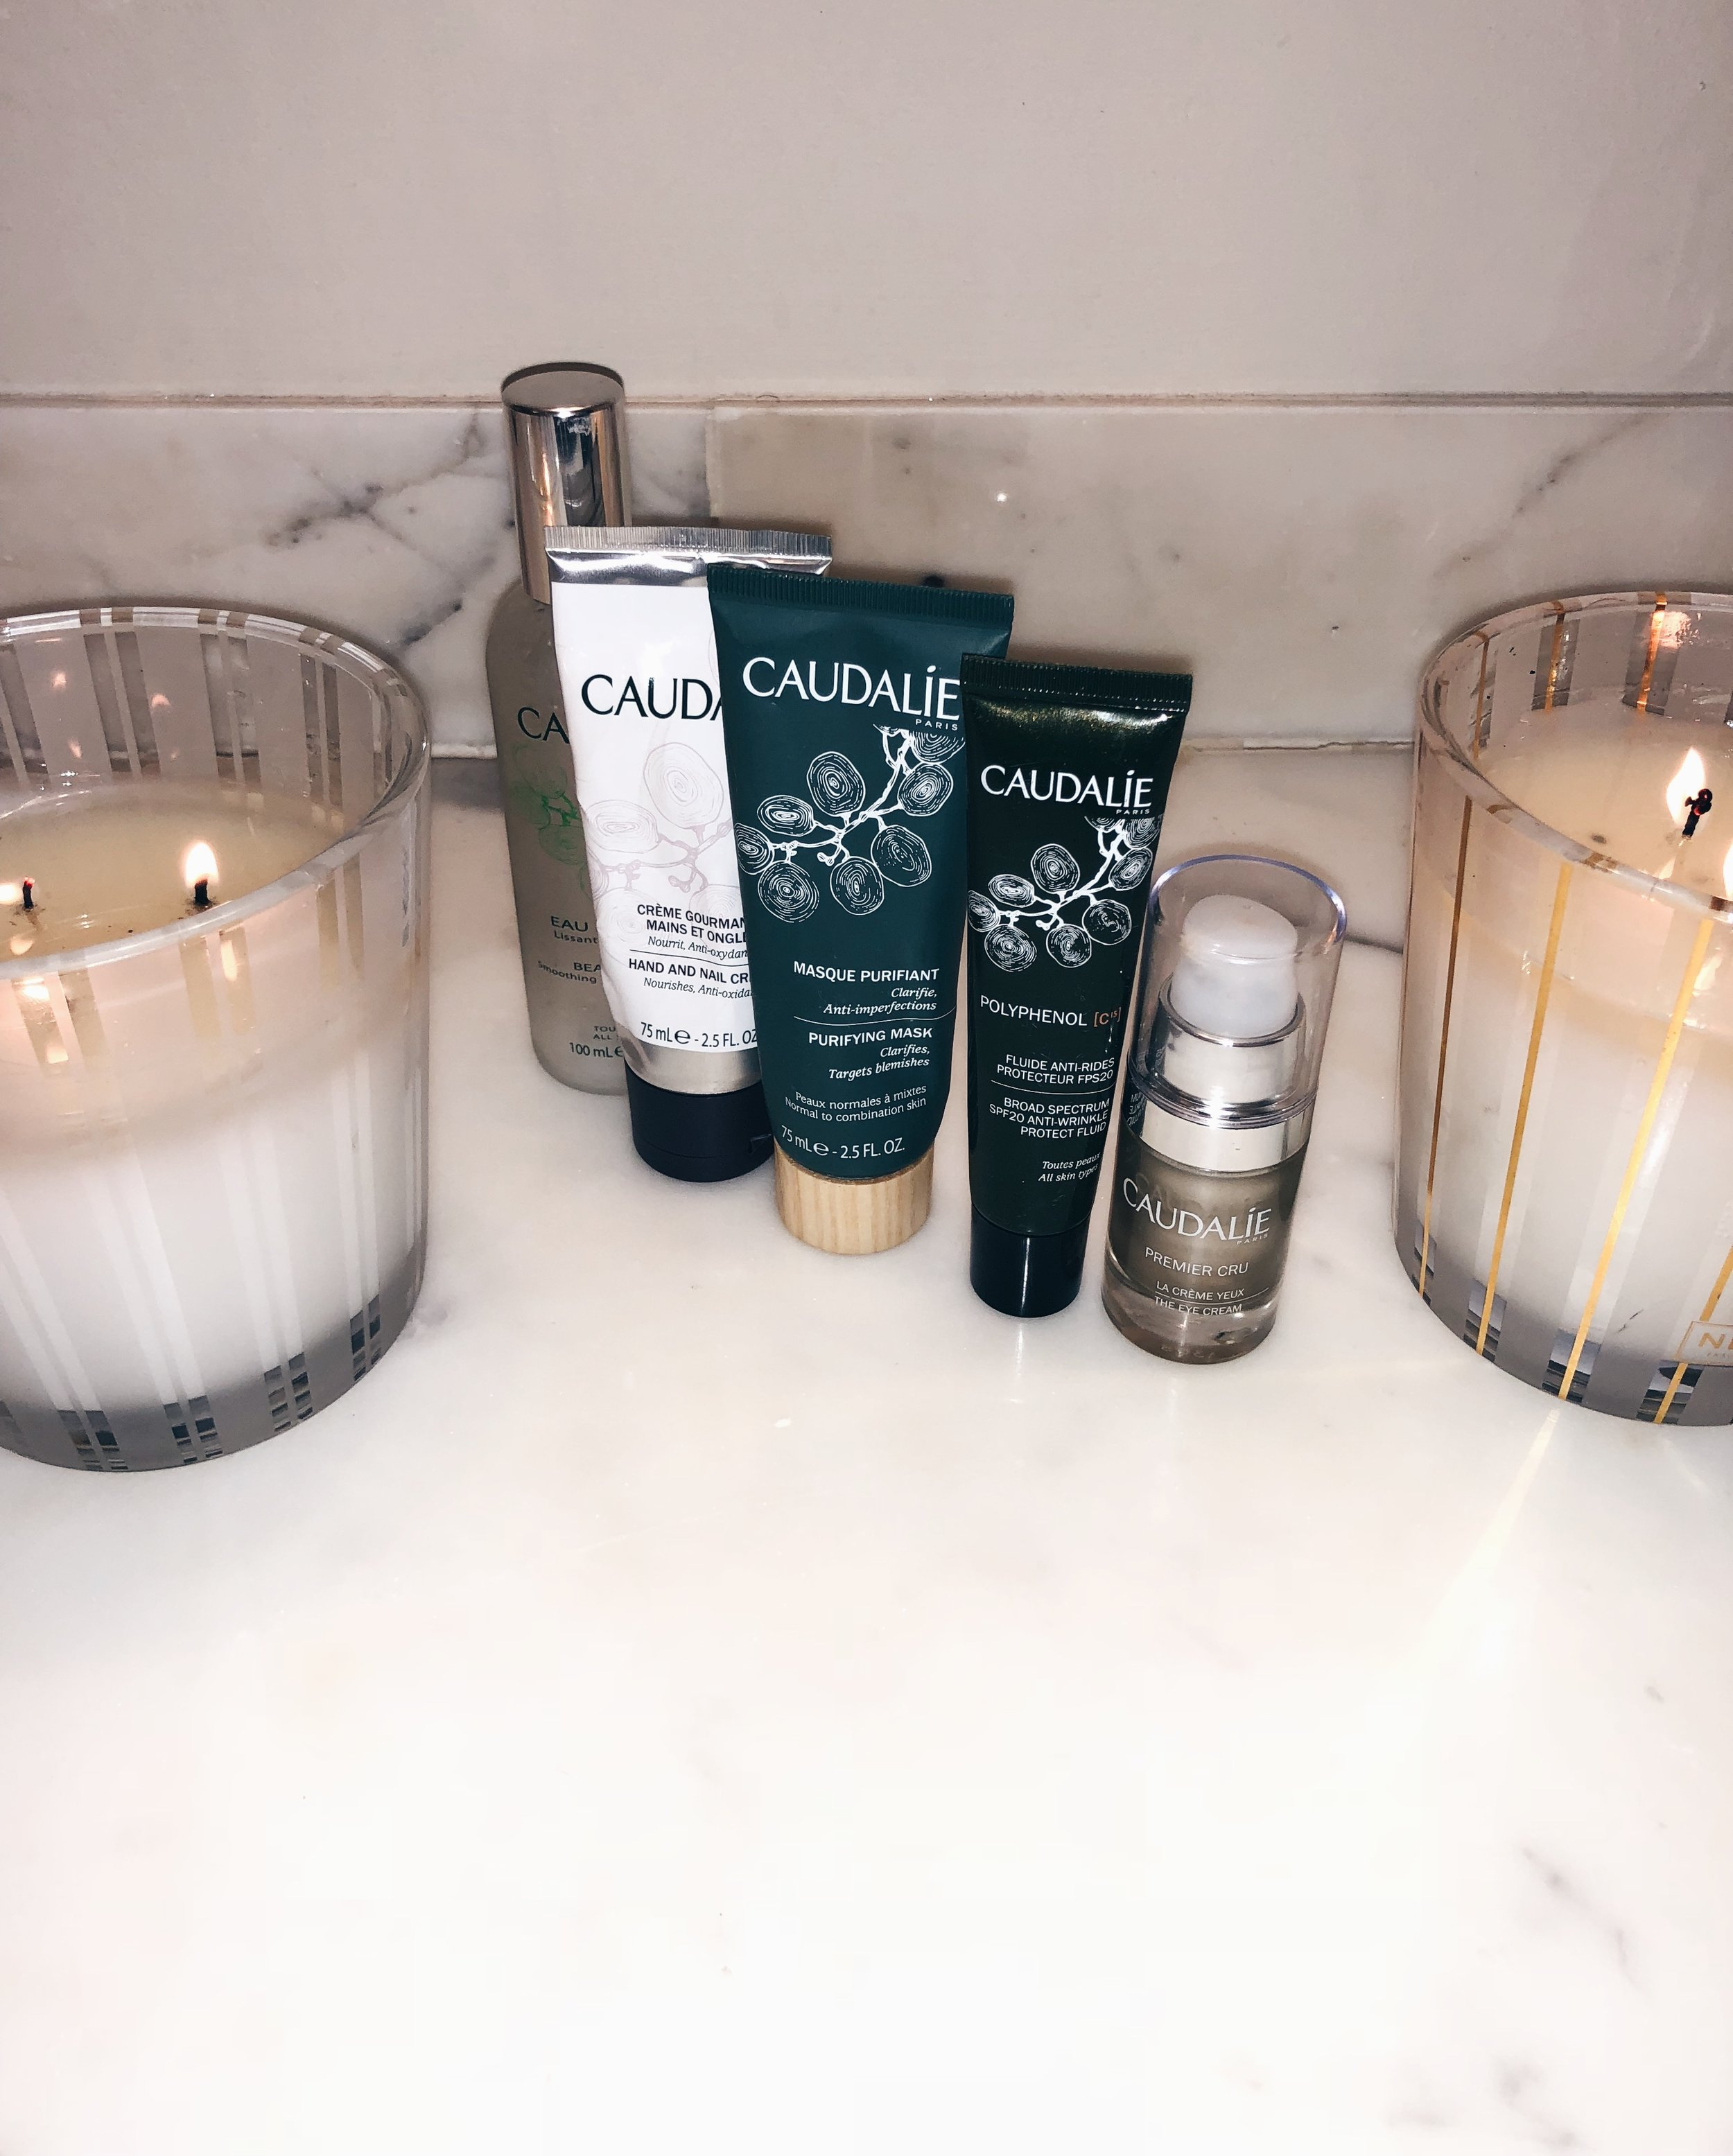 Products from Left to Right. Click Names to shop through link...  1.  CAUDALIE: Beauty Elixir 40oz ,  Beauty elixir 18oz ... I recommend the big 40 oz but the 18oz is good for travel or as a first time sample.   2.  CAUDALIE: Hand and Nail Cream    3.  CAUDALIE: Purifying Mask    4.  CAUDALIE: Polyphenol SFP 20 Moisturizer. .. discontinued unfortunately such a good product but the  Moisturizing Sorbet Cream  is just as Good.  5.  CAUDALIE: Premier Cru Eye Cream